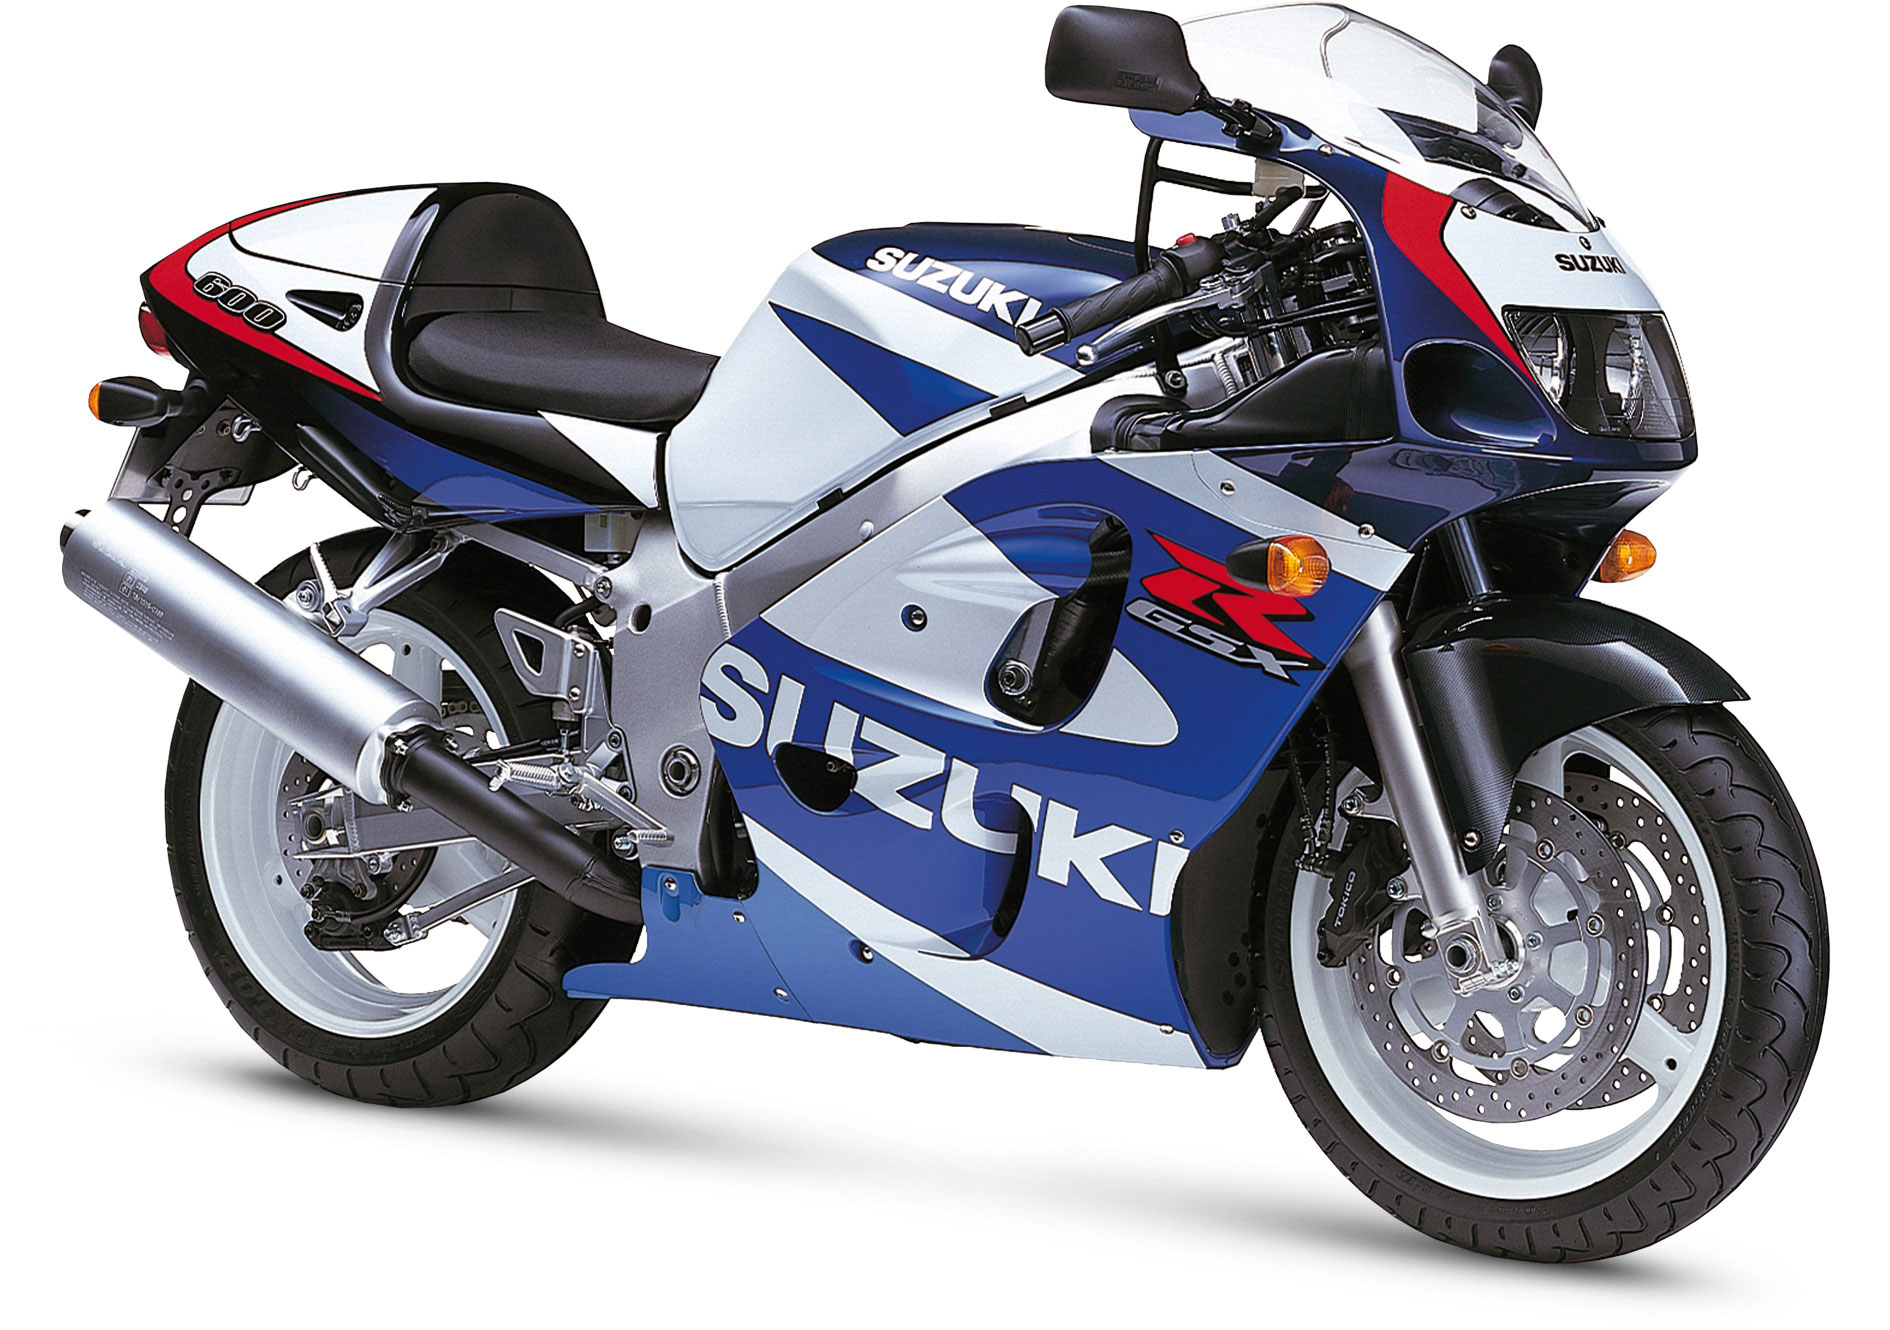 2000 suzuki gsx r 600 moto zombdrive com. Black Bedroom Furniture Sets. Home Design Ideas